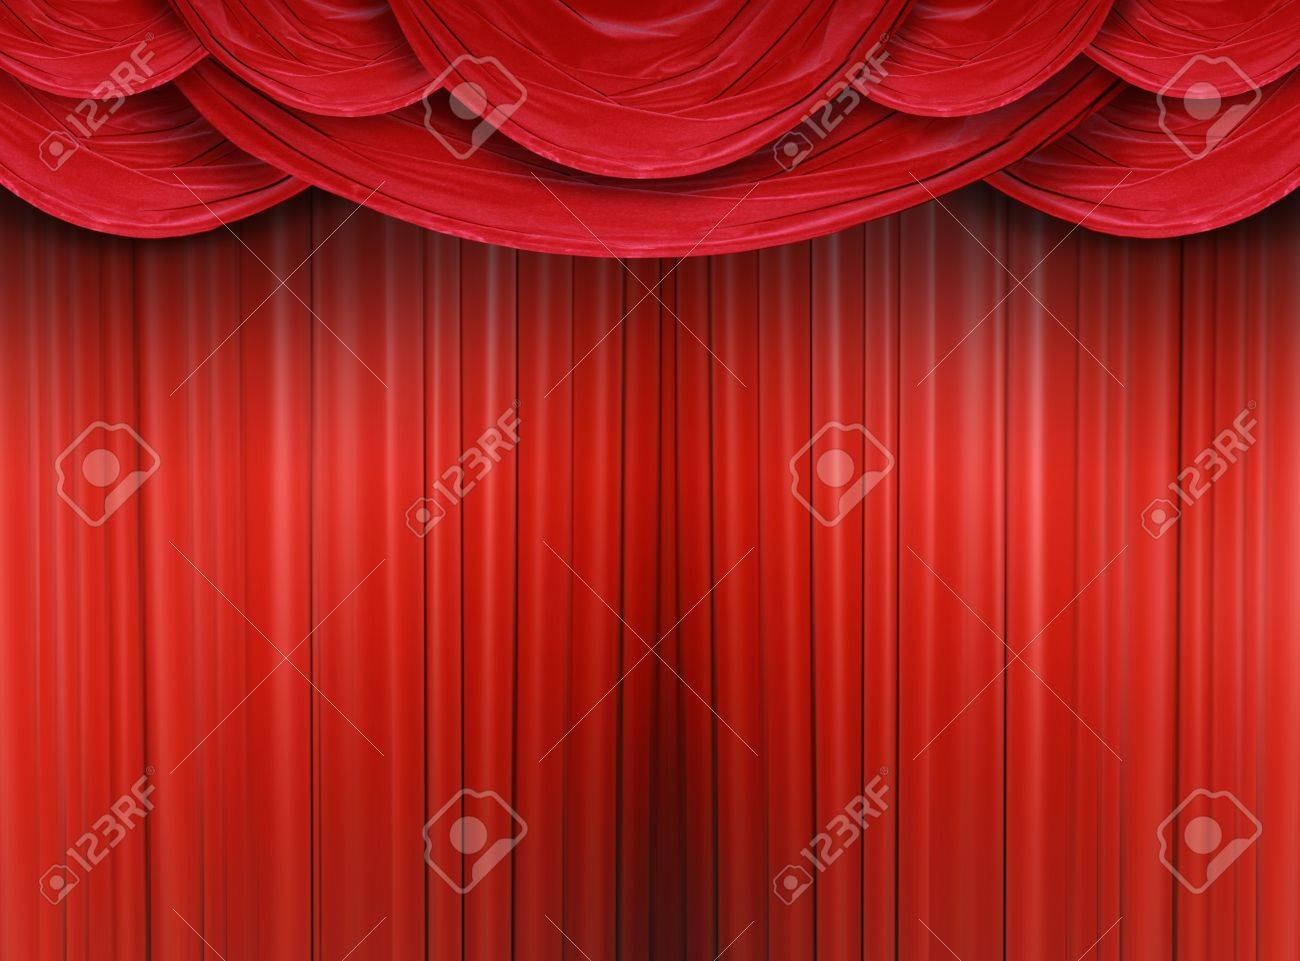 Red curtain of a classical theater Stock Photo - 9364639